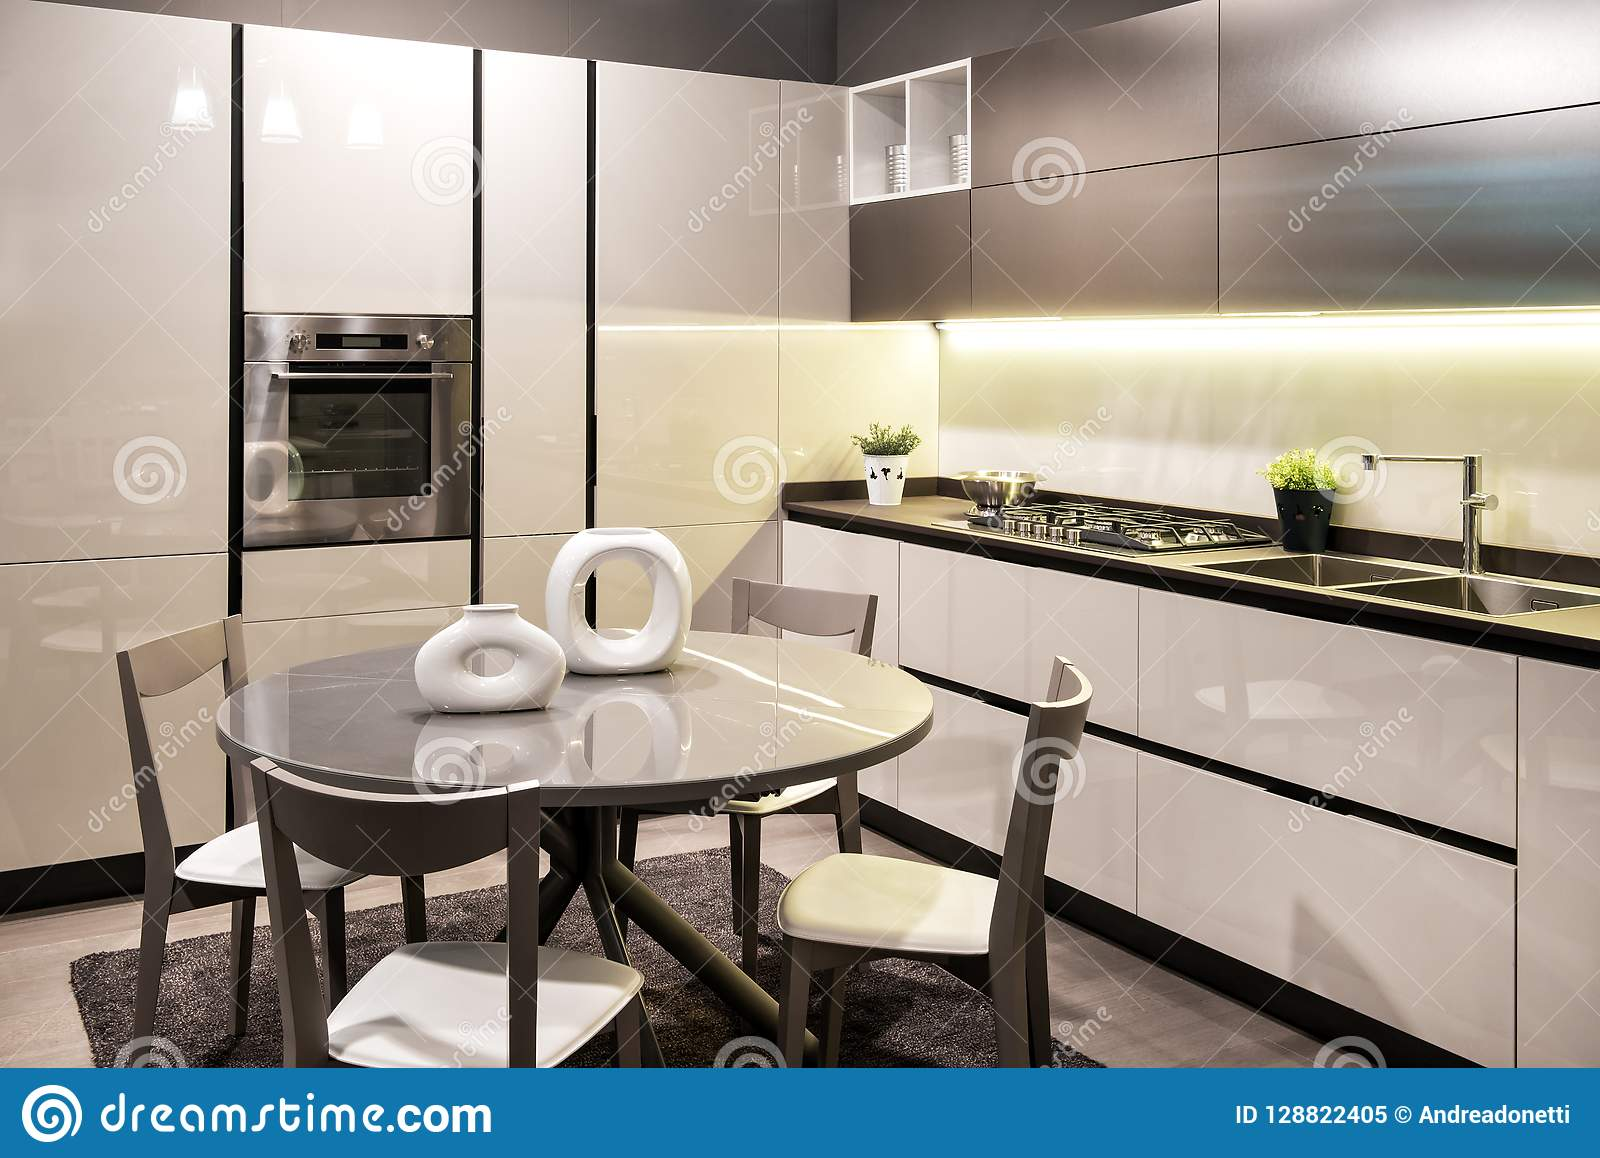 Modern Built In Kitchen With Circular Dining Table Stock Image Image Of Sink Appliances 128822405